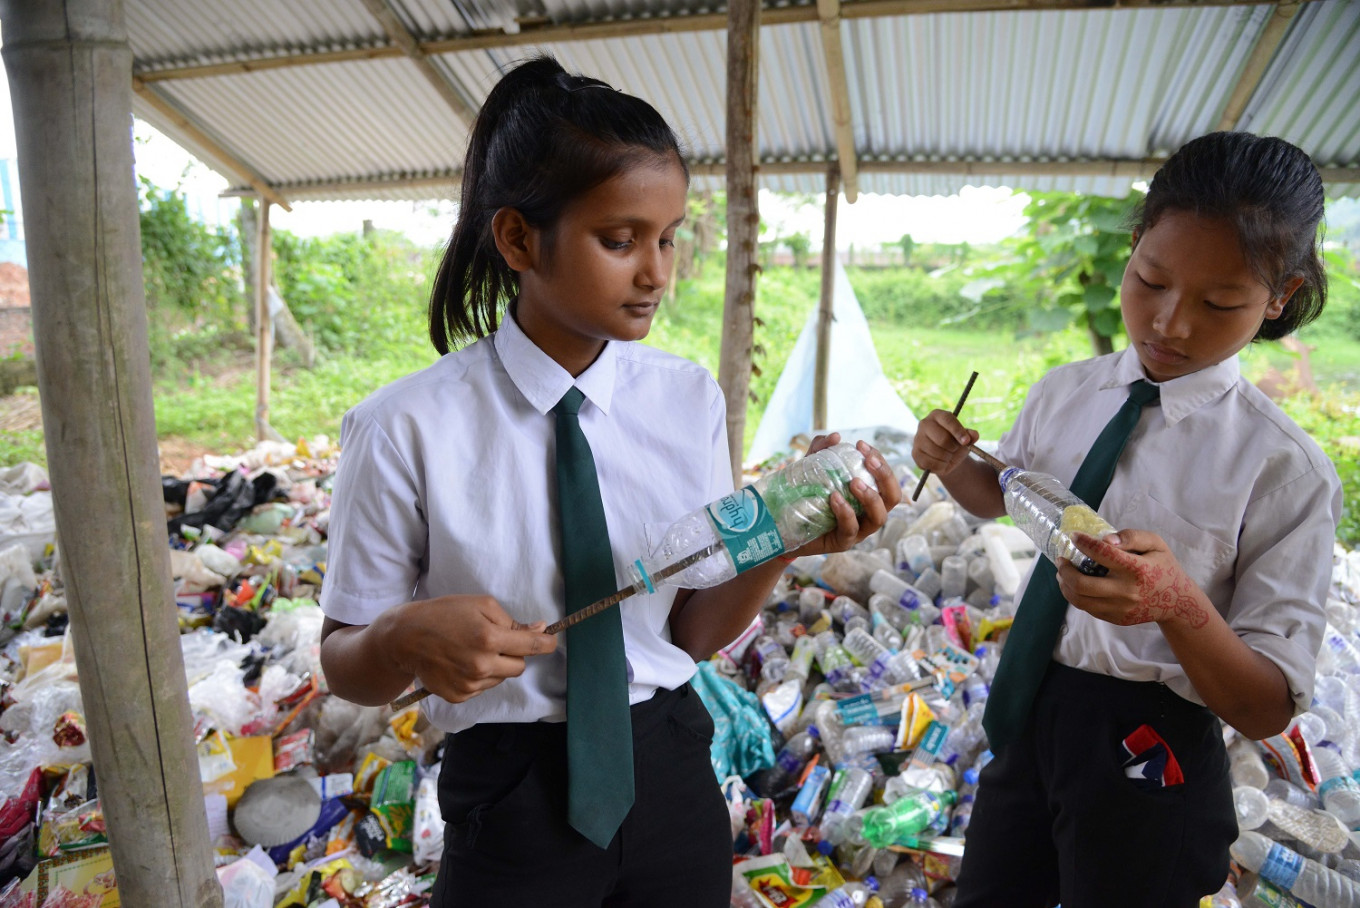 Indian school demands waste plastic as 'fees'